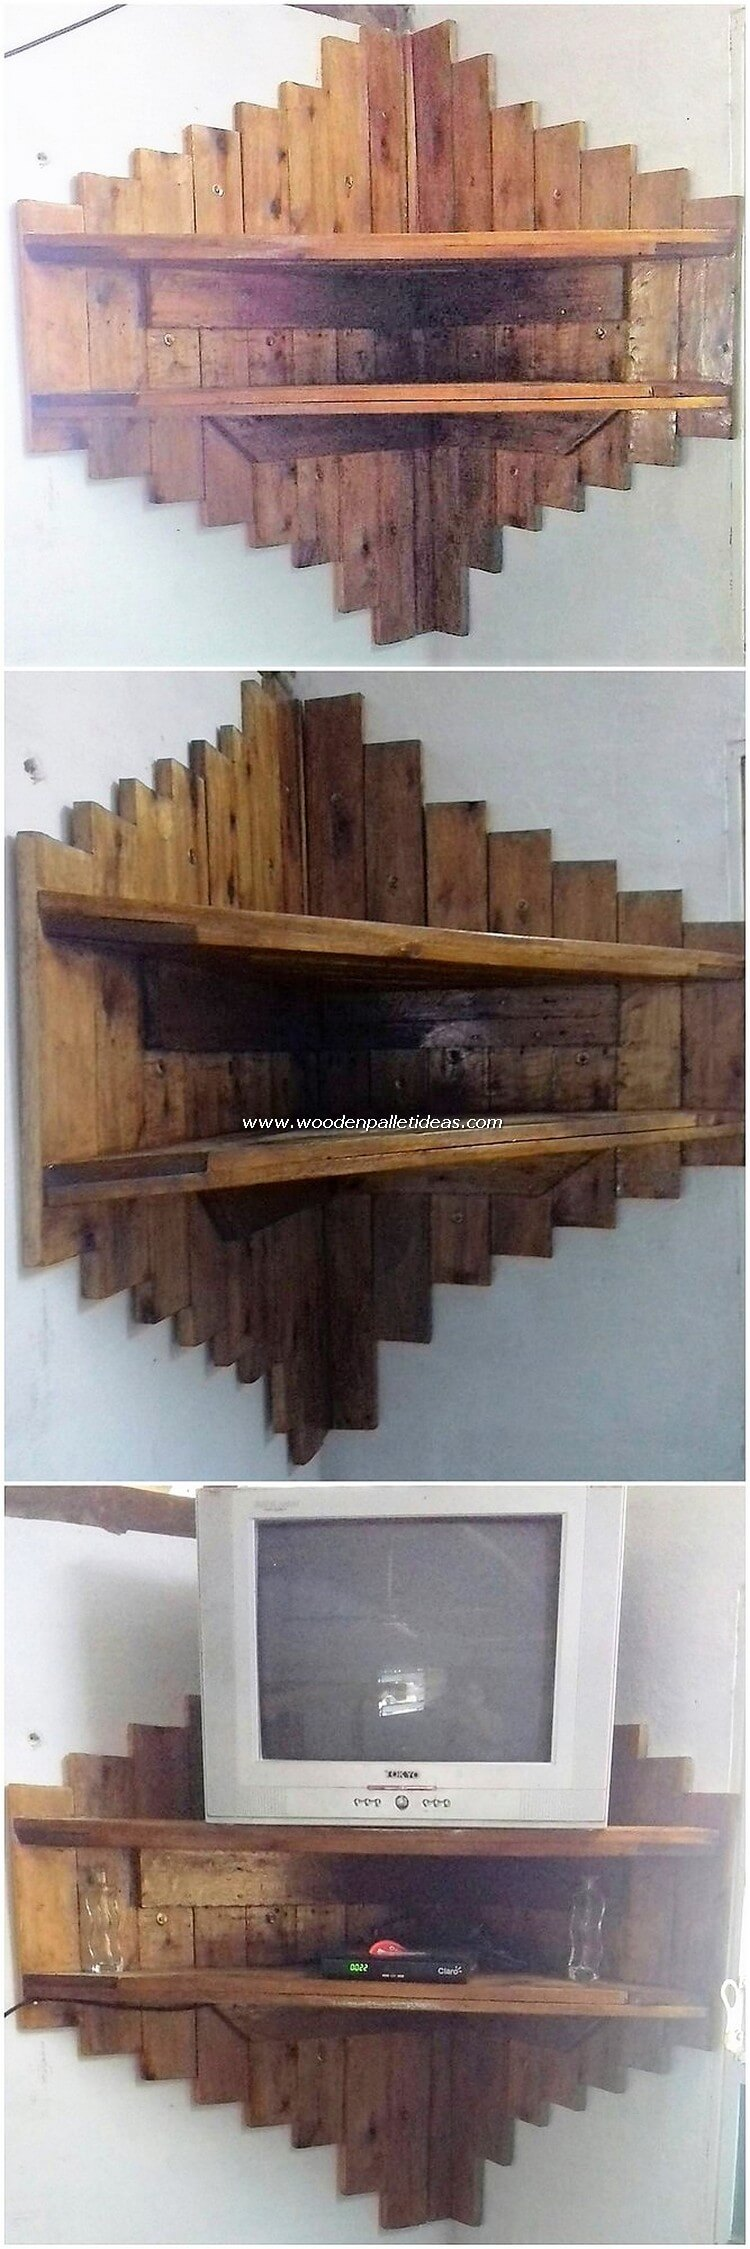 Pallet Corner Wall Shelf with TV Stand